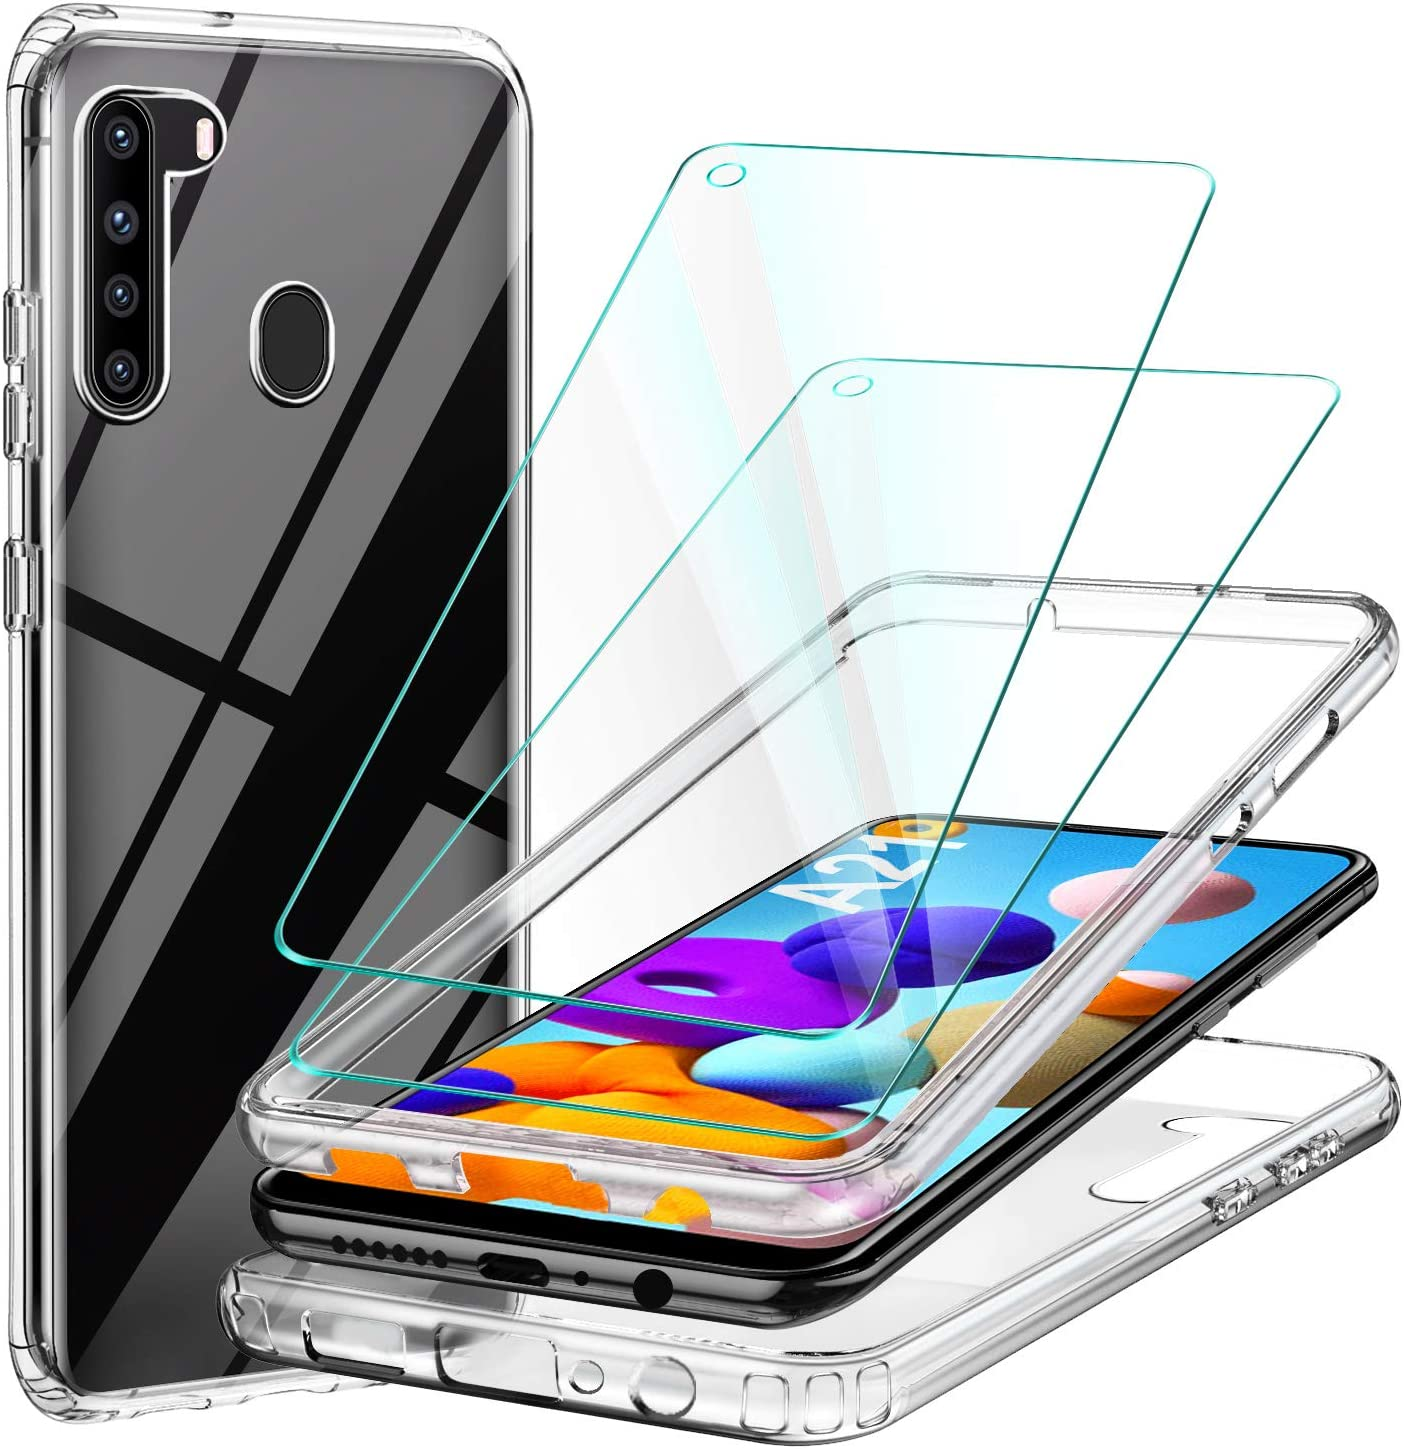 Ivencase Cover Case For Samsung Galaxy A21s Shockproof Silicone Tpu Transparent Cover Protective Soft Case For Samsung Galaxy A21s Transparent Amazon Co Uk Electronics